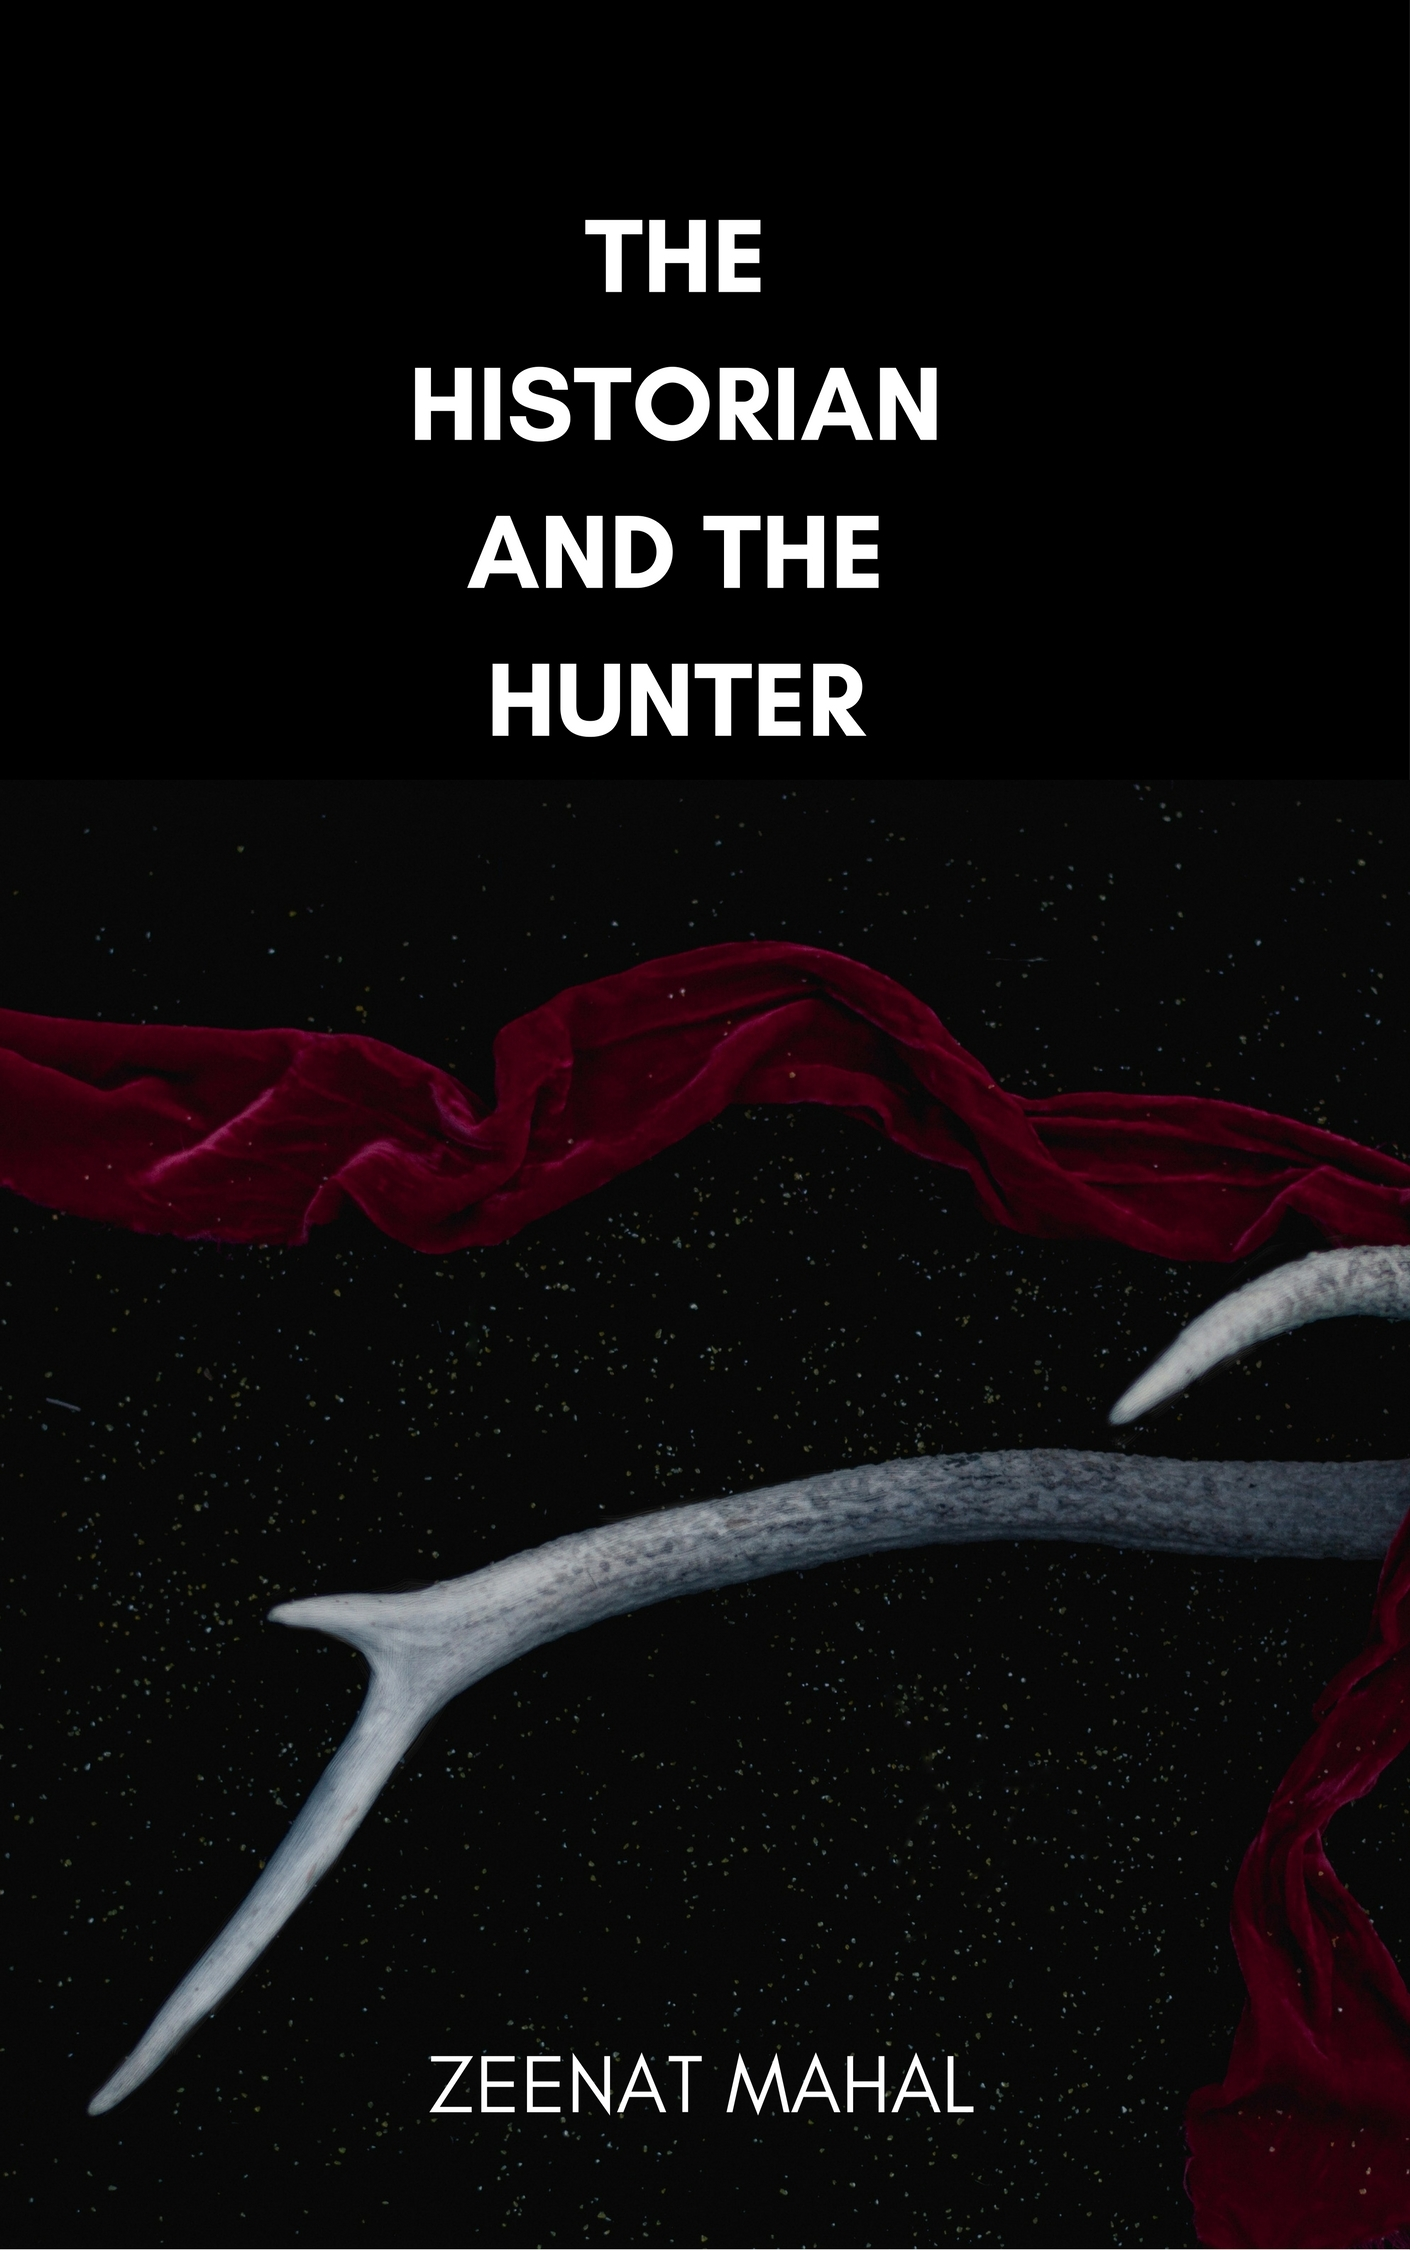 THE HISTORIAN AND THE HUNTER